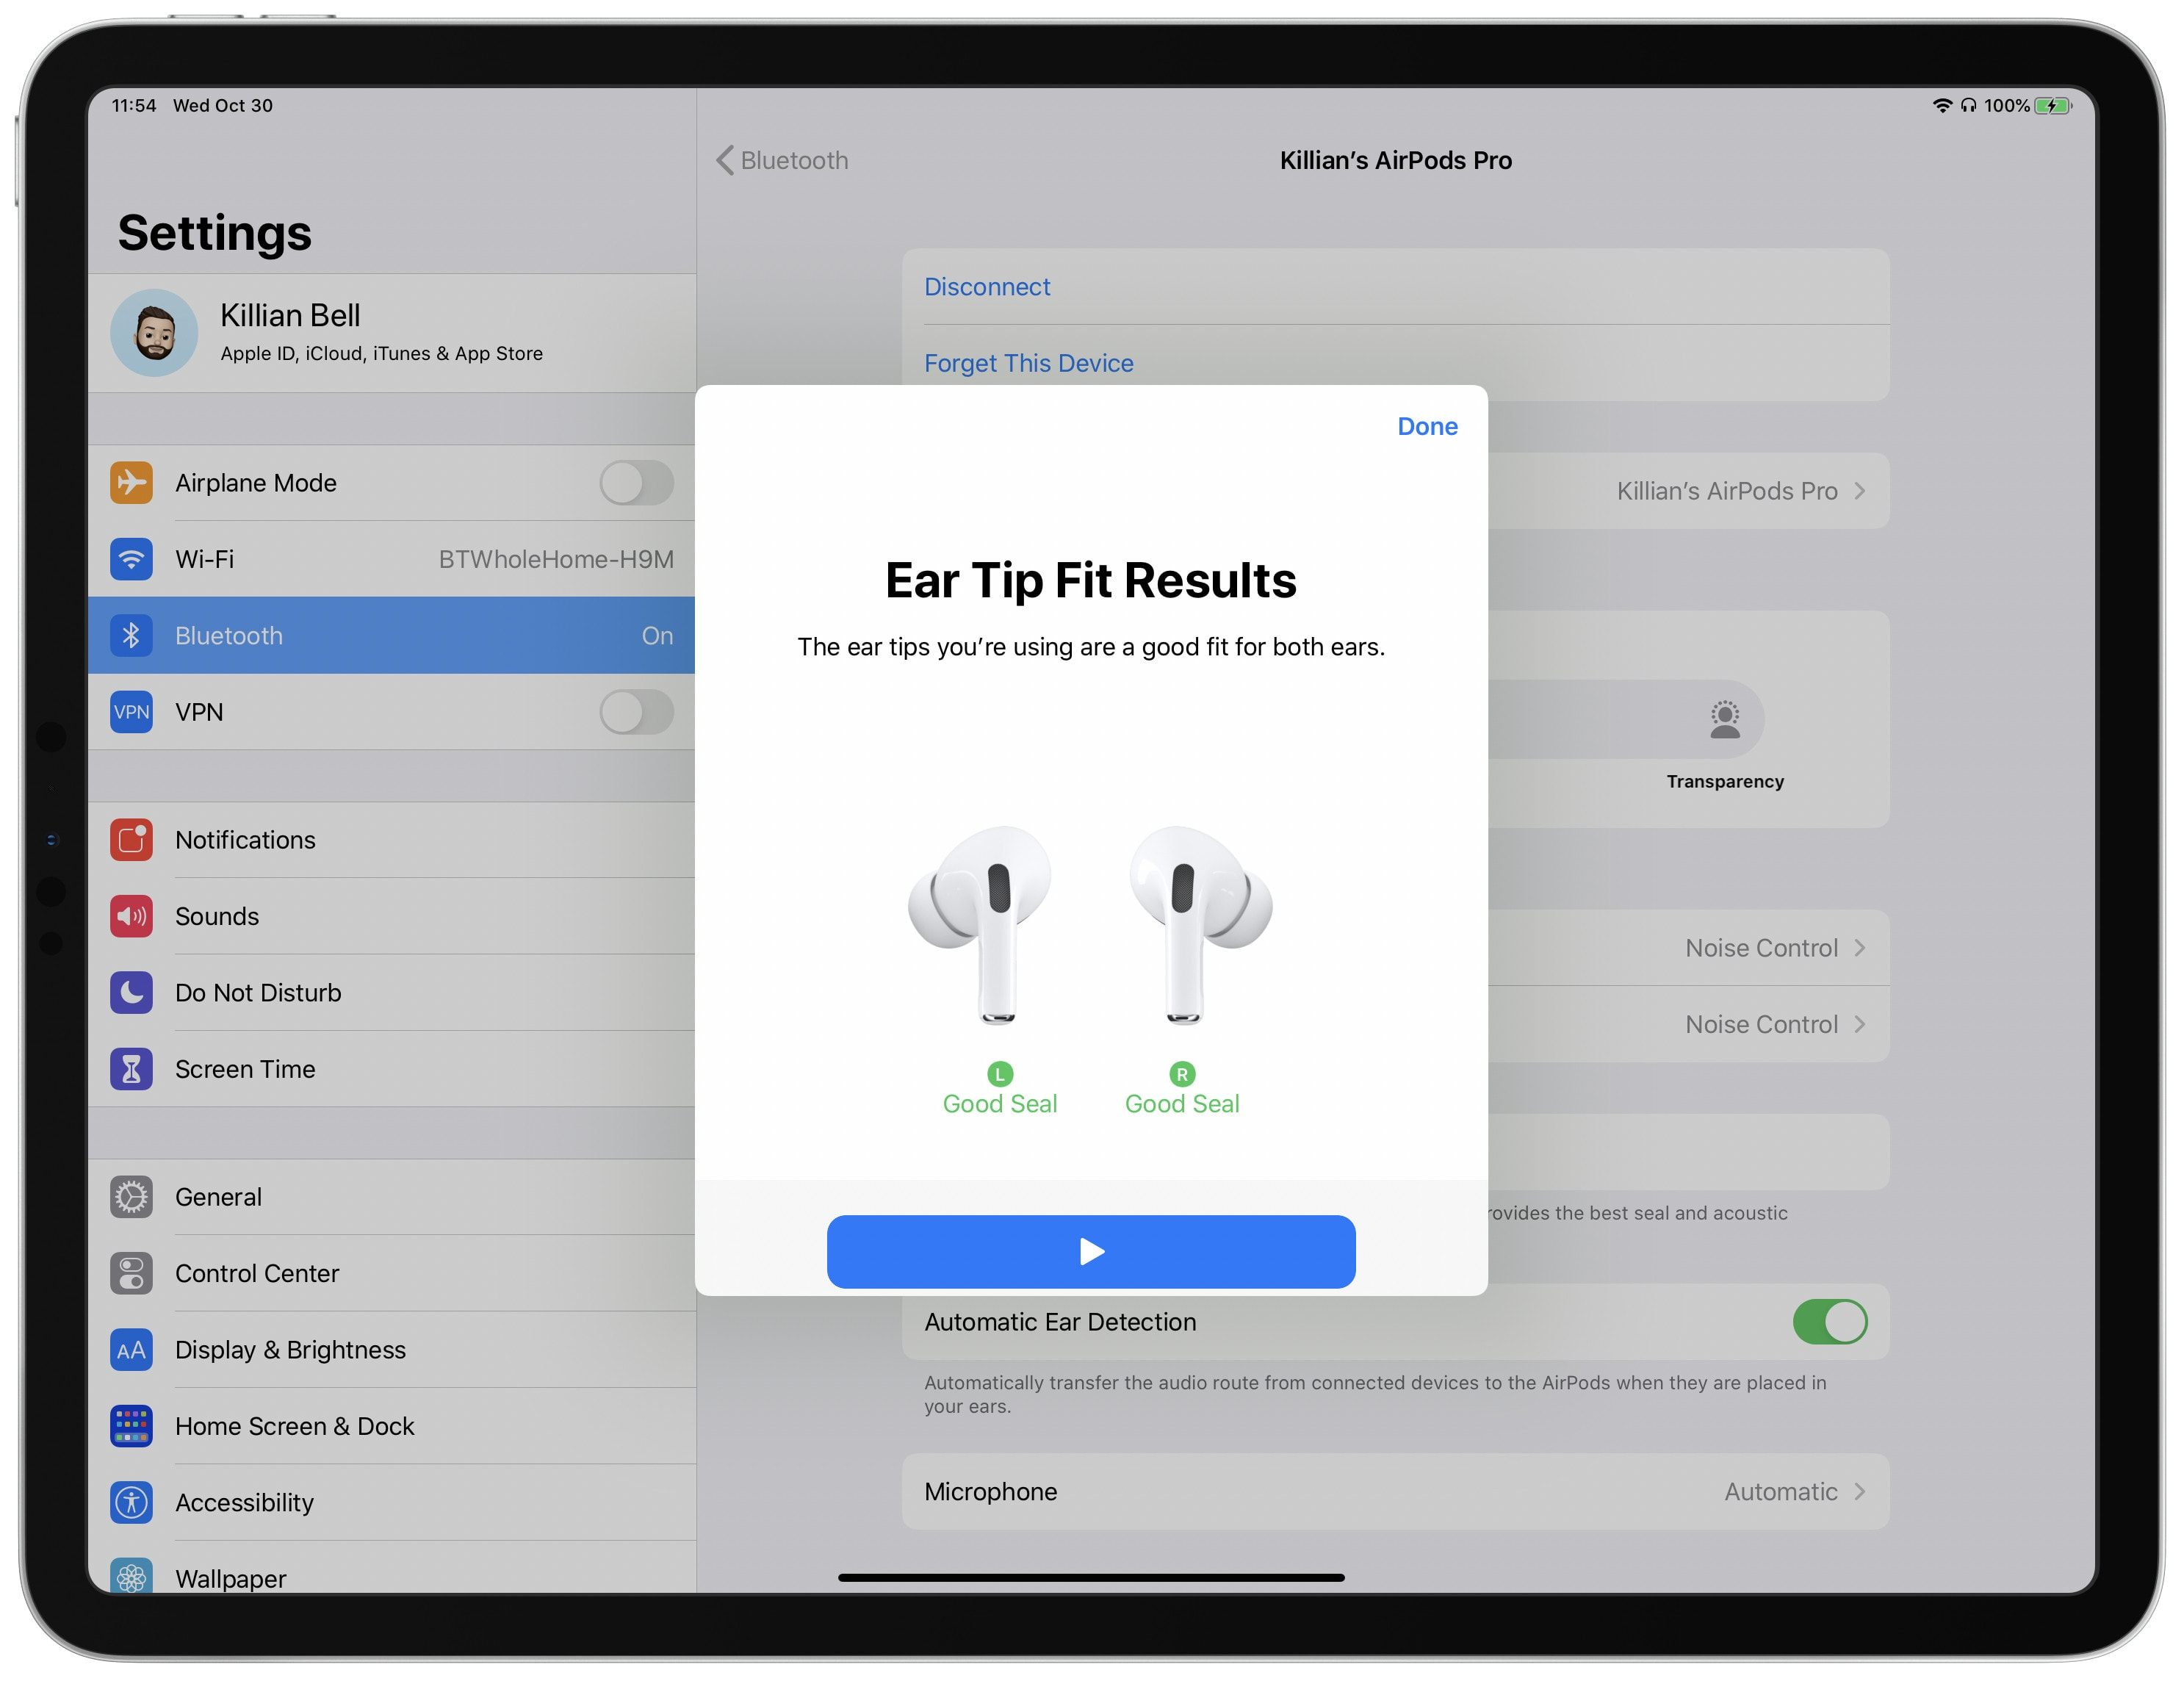 AirPods Pro Ear Tip Fit Test: Are you wearing AirPods Pro properly